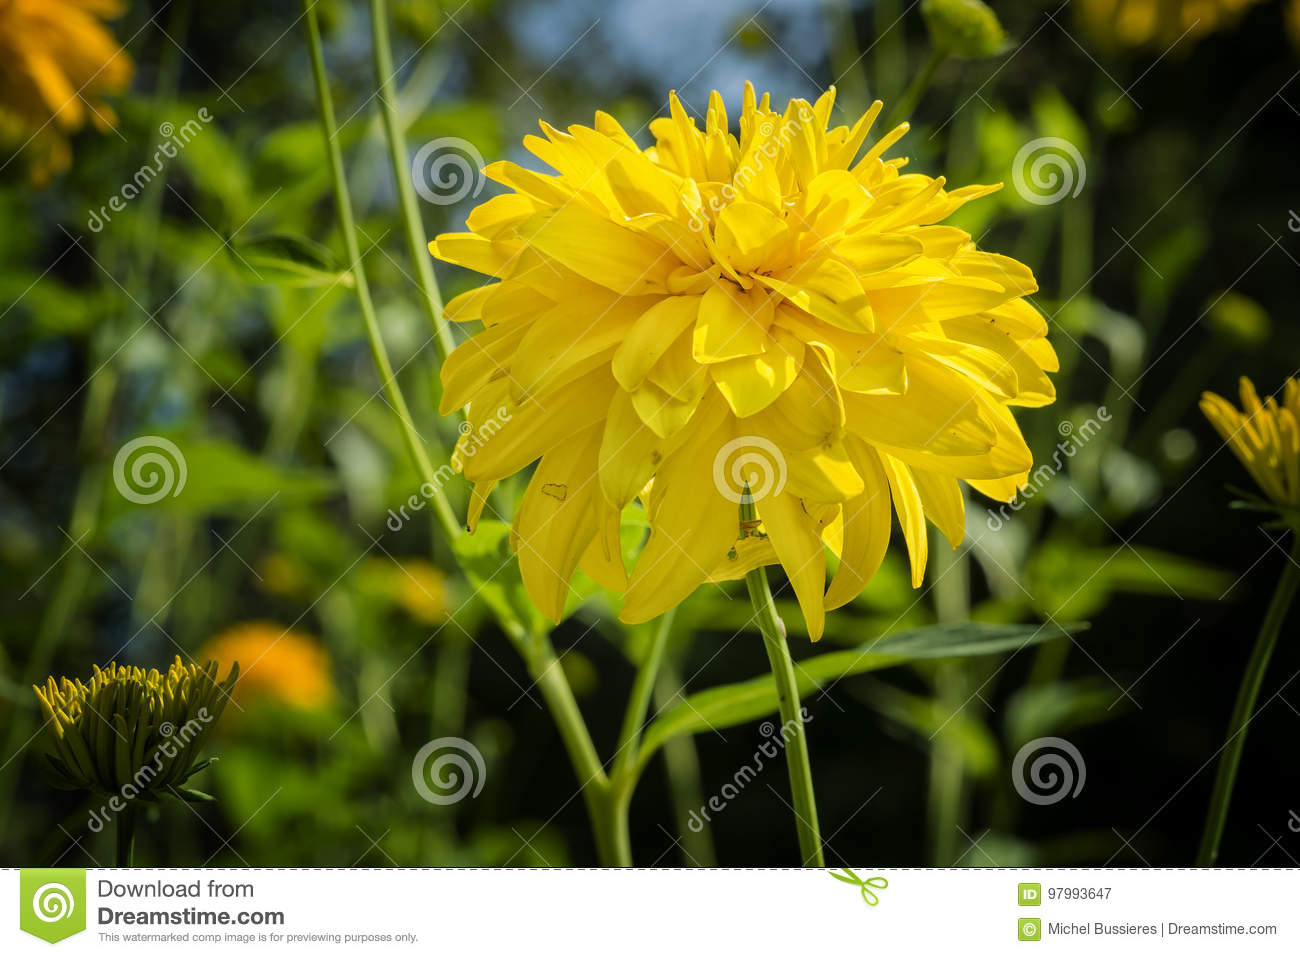 Coreopsis Grandiflora Sunray Flower Stock Image Image Of Flower